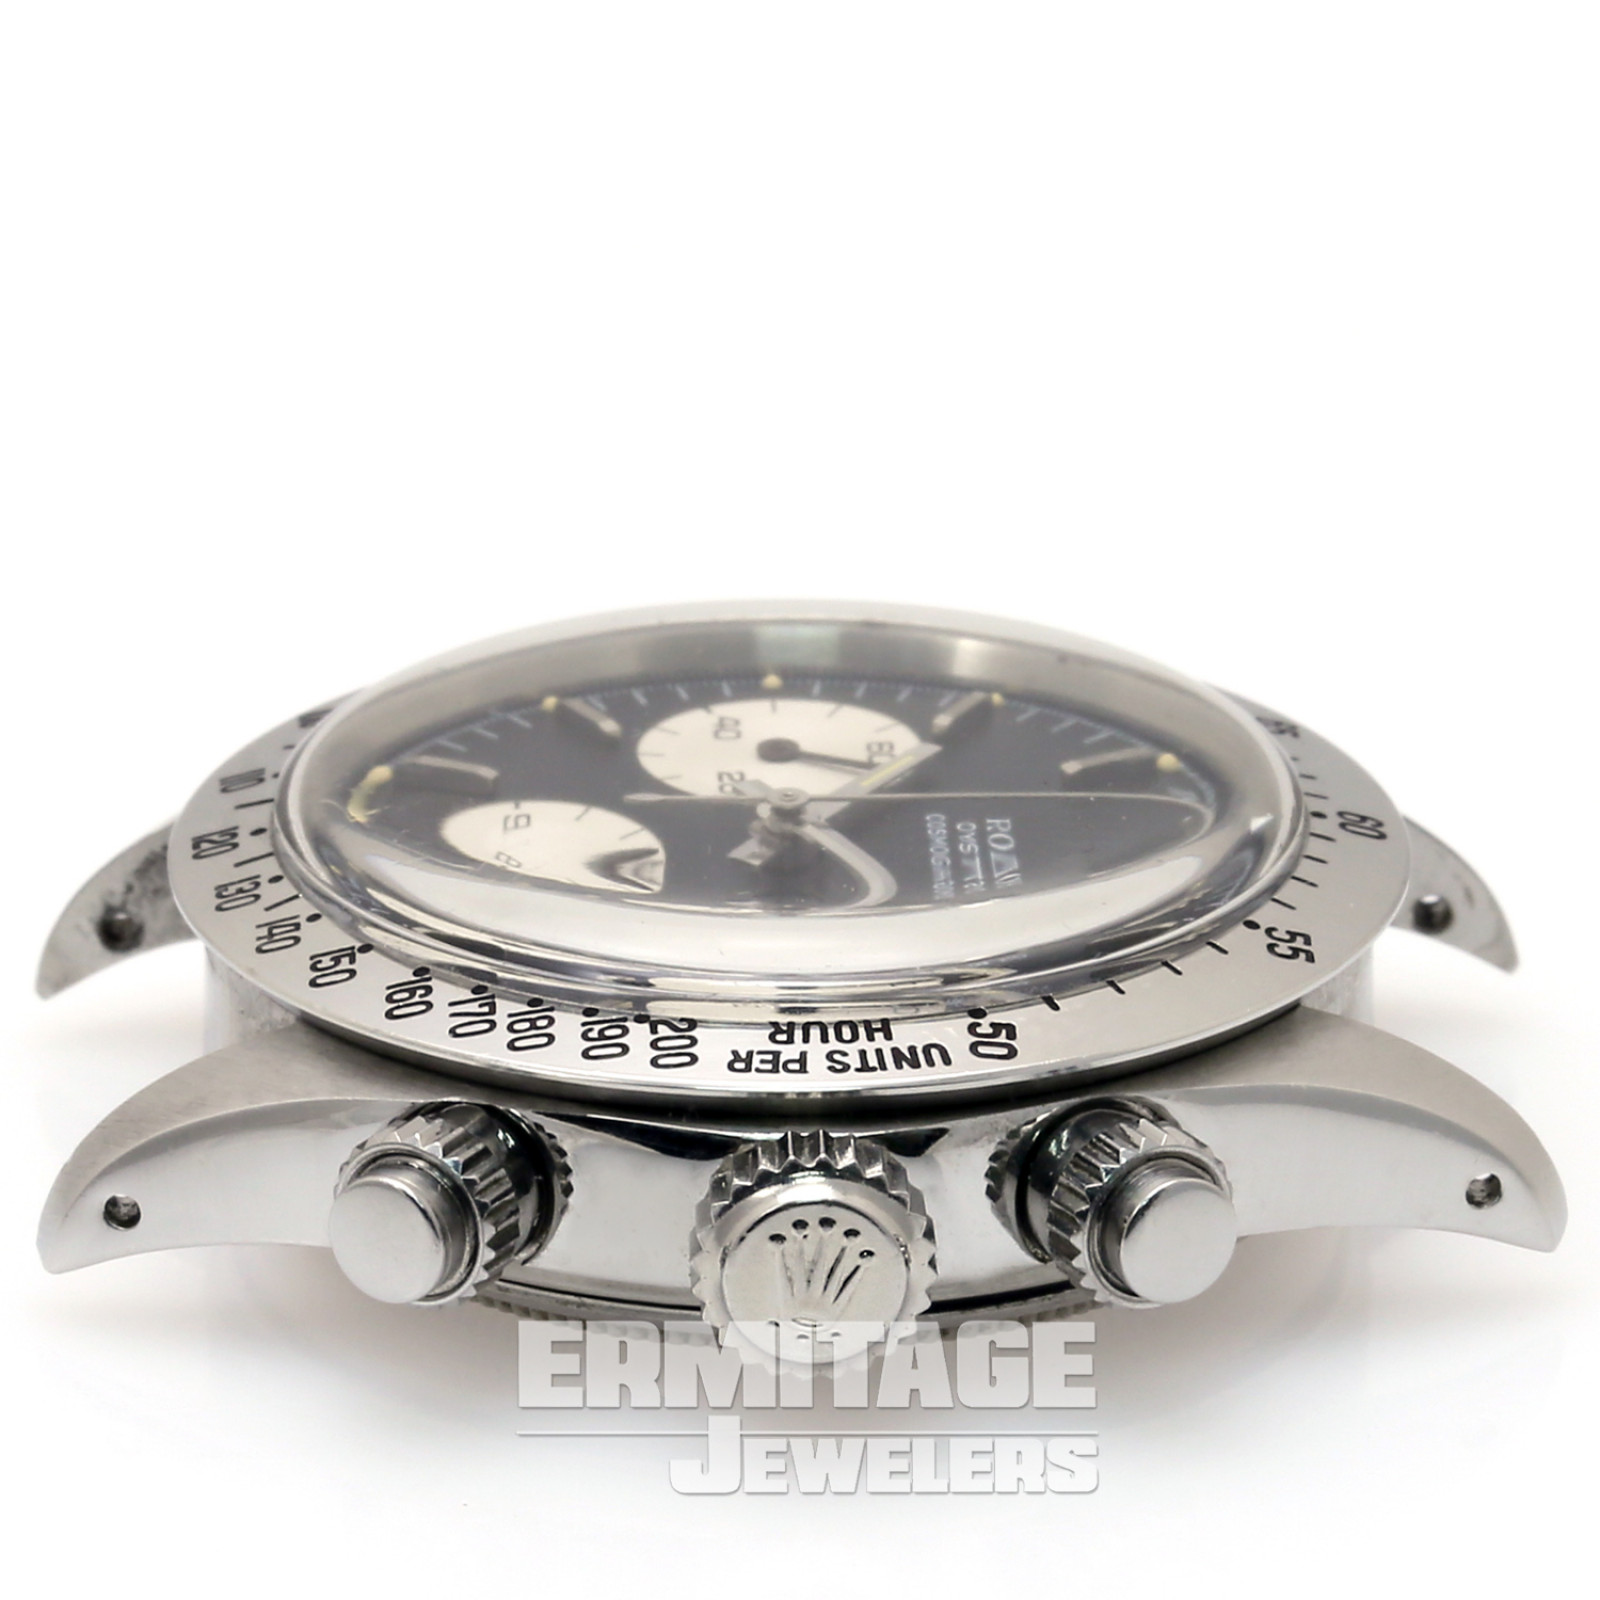 Vintage Rolex Oyster Cosmograph 6265